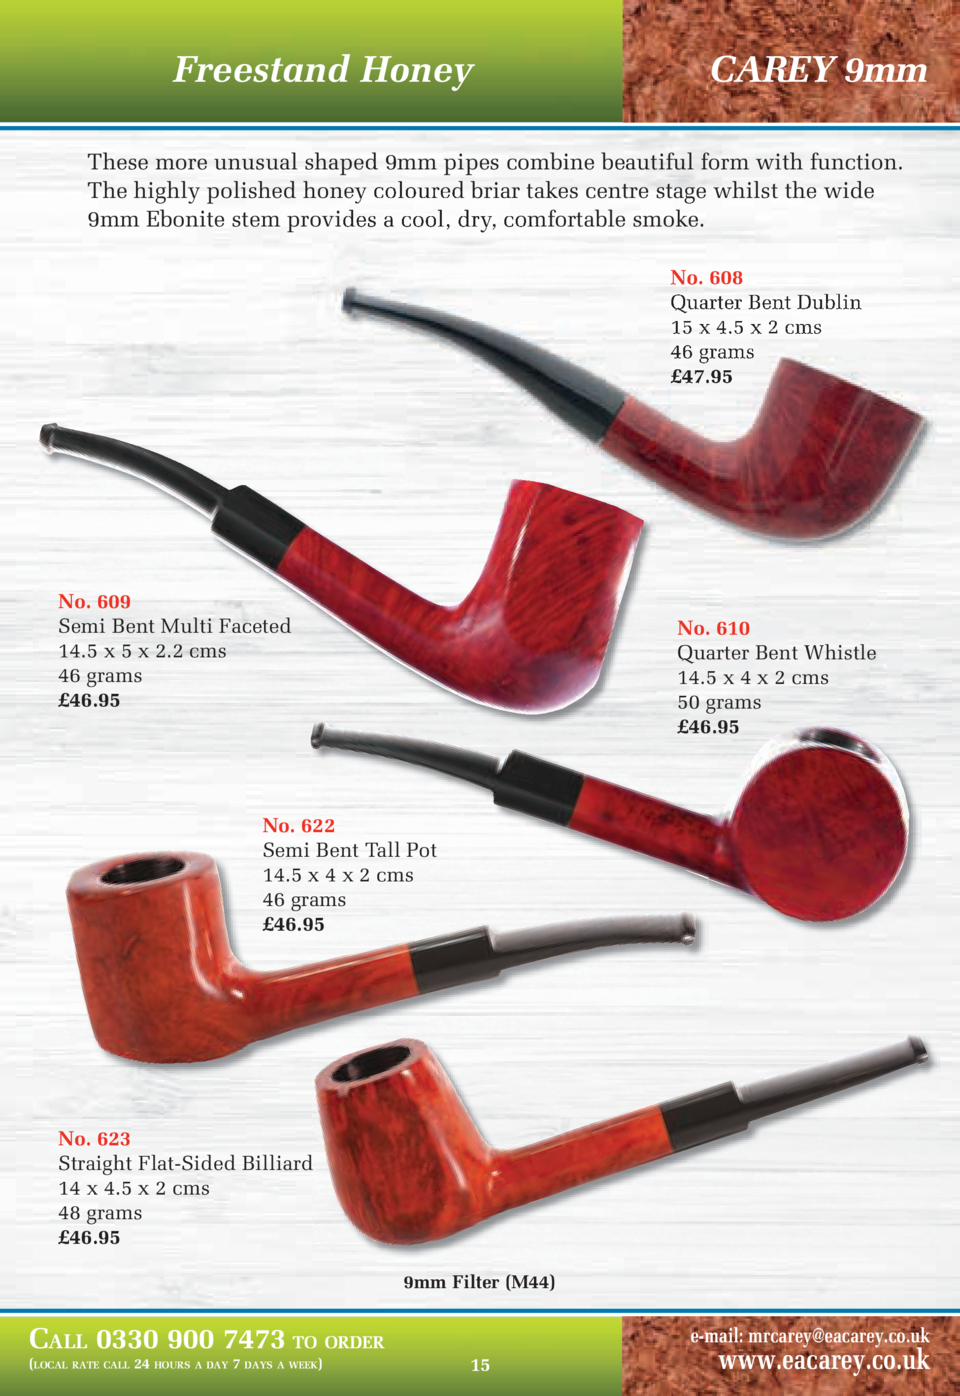 Freestand Honey  CAREY 9mm  These more unusual shaped 9mm pipes combine beautiful form with function. The highly polished ...